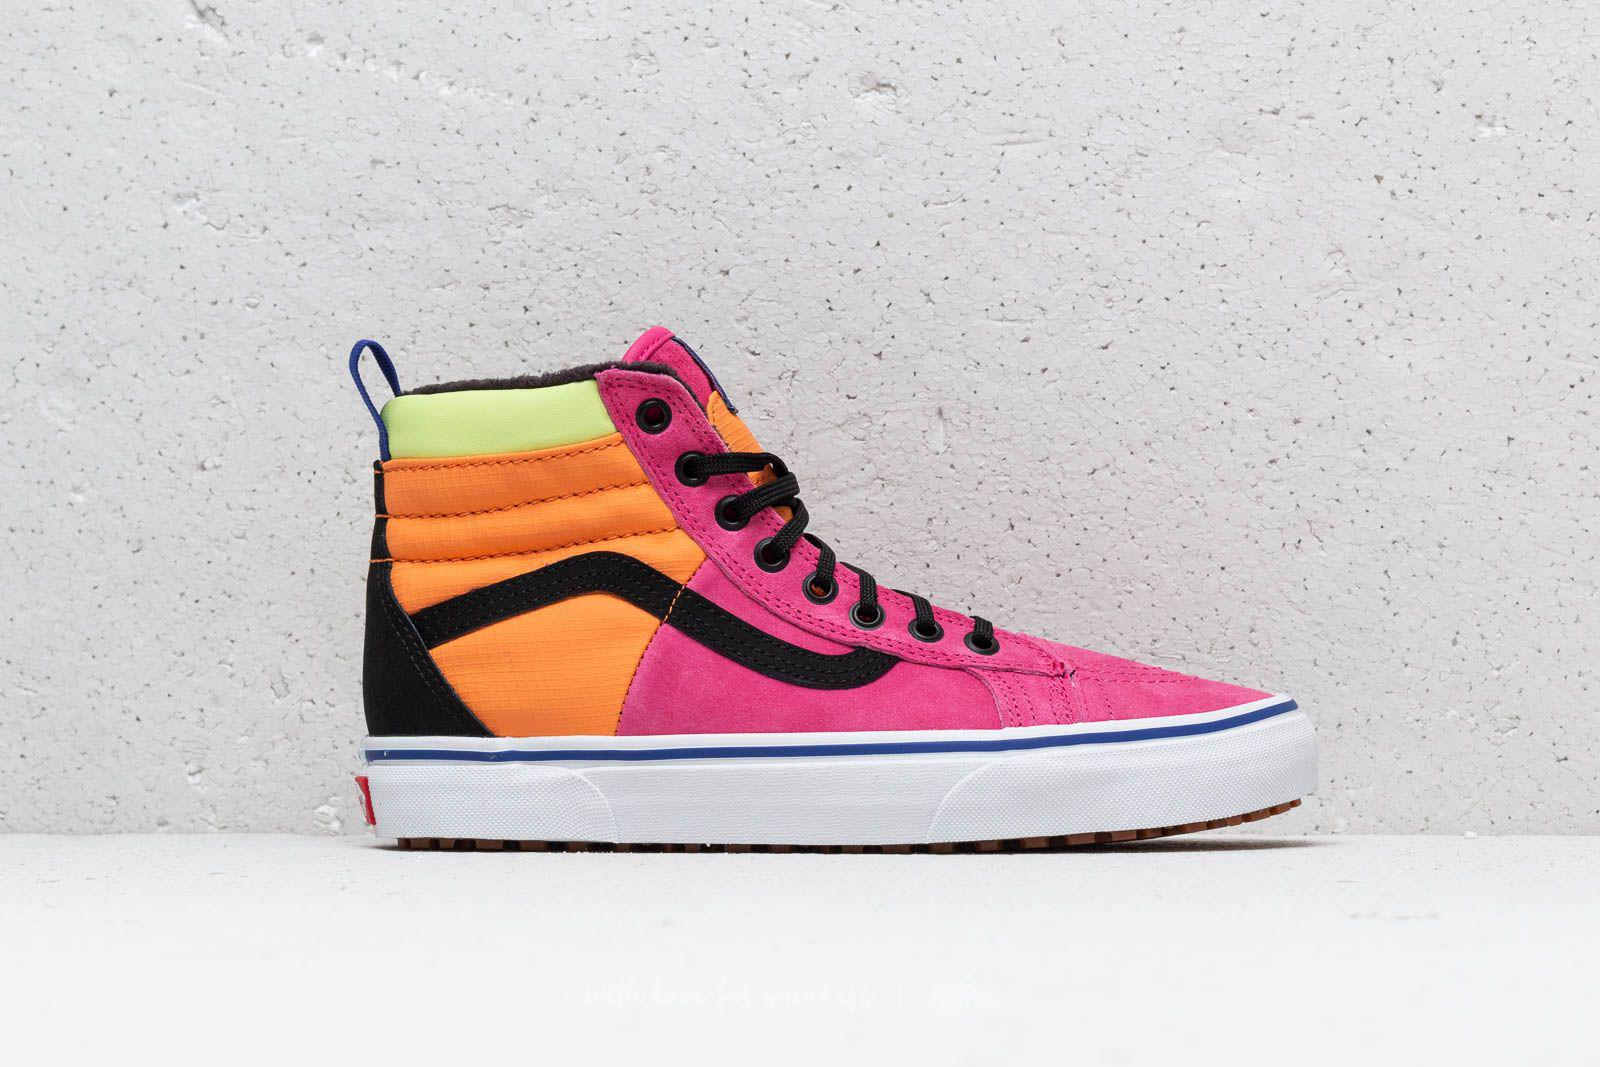 24ad978631 Lyst - Vans Sk8-hi Mte Sneakers In Pink Vn0a3dq5uq61 in Pink for Men